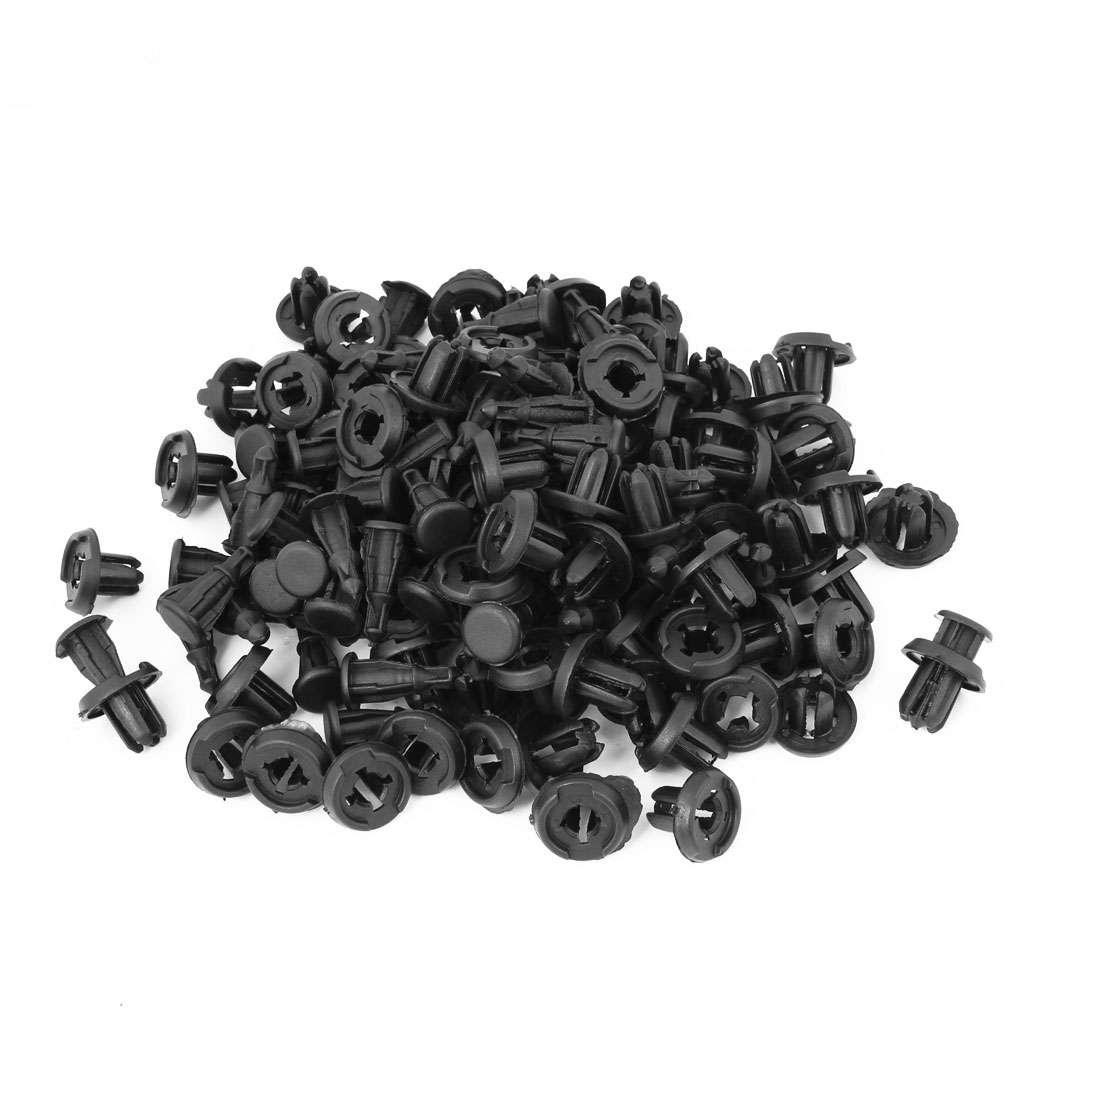 100 Pcs Auto Car Fender 10mm Hole Black Plastic Trim Boot Rivets Push Clip